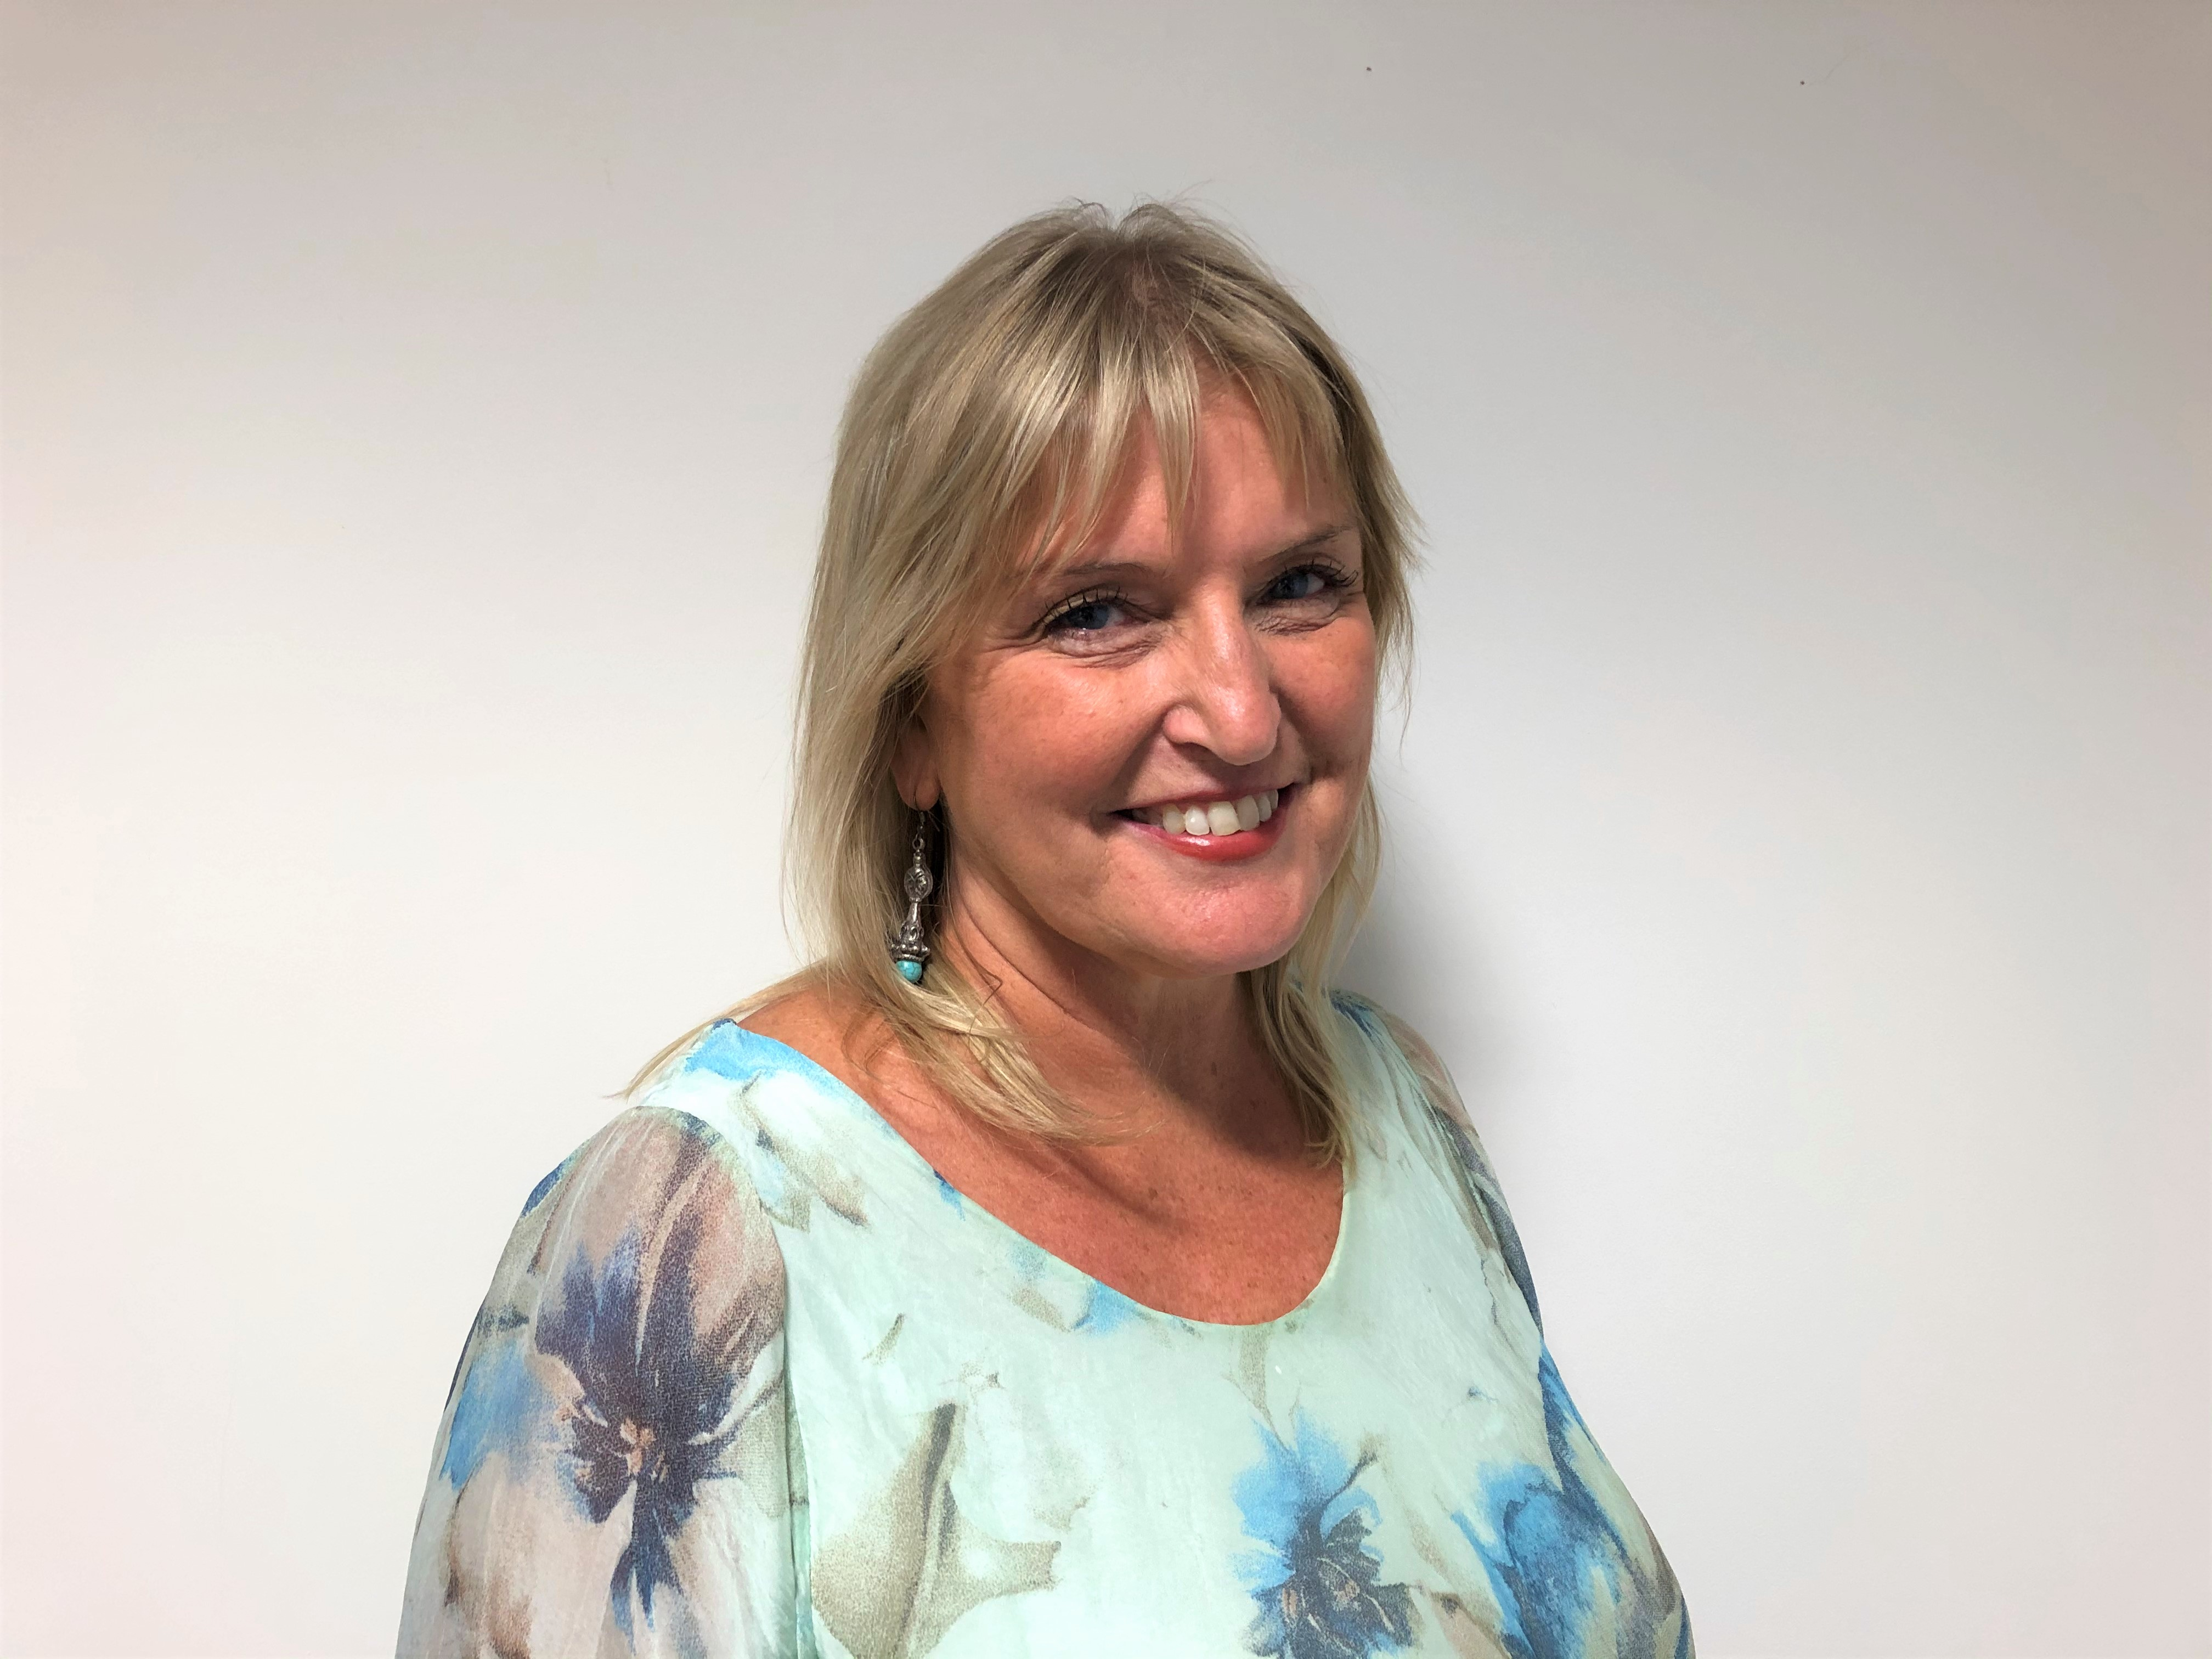 Liverpool Clinic Site Director